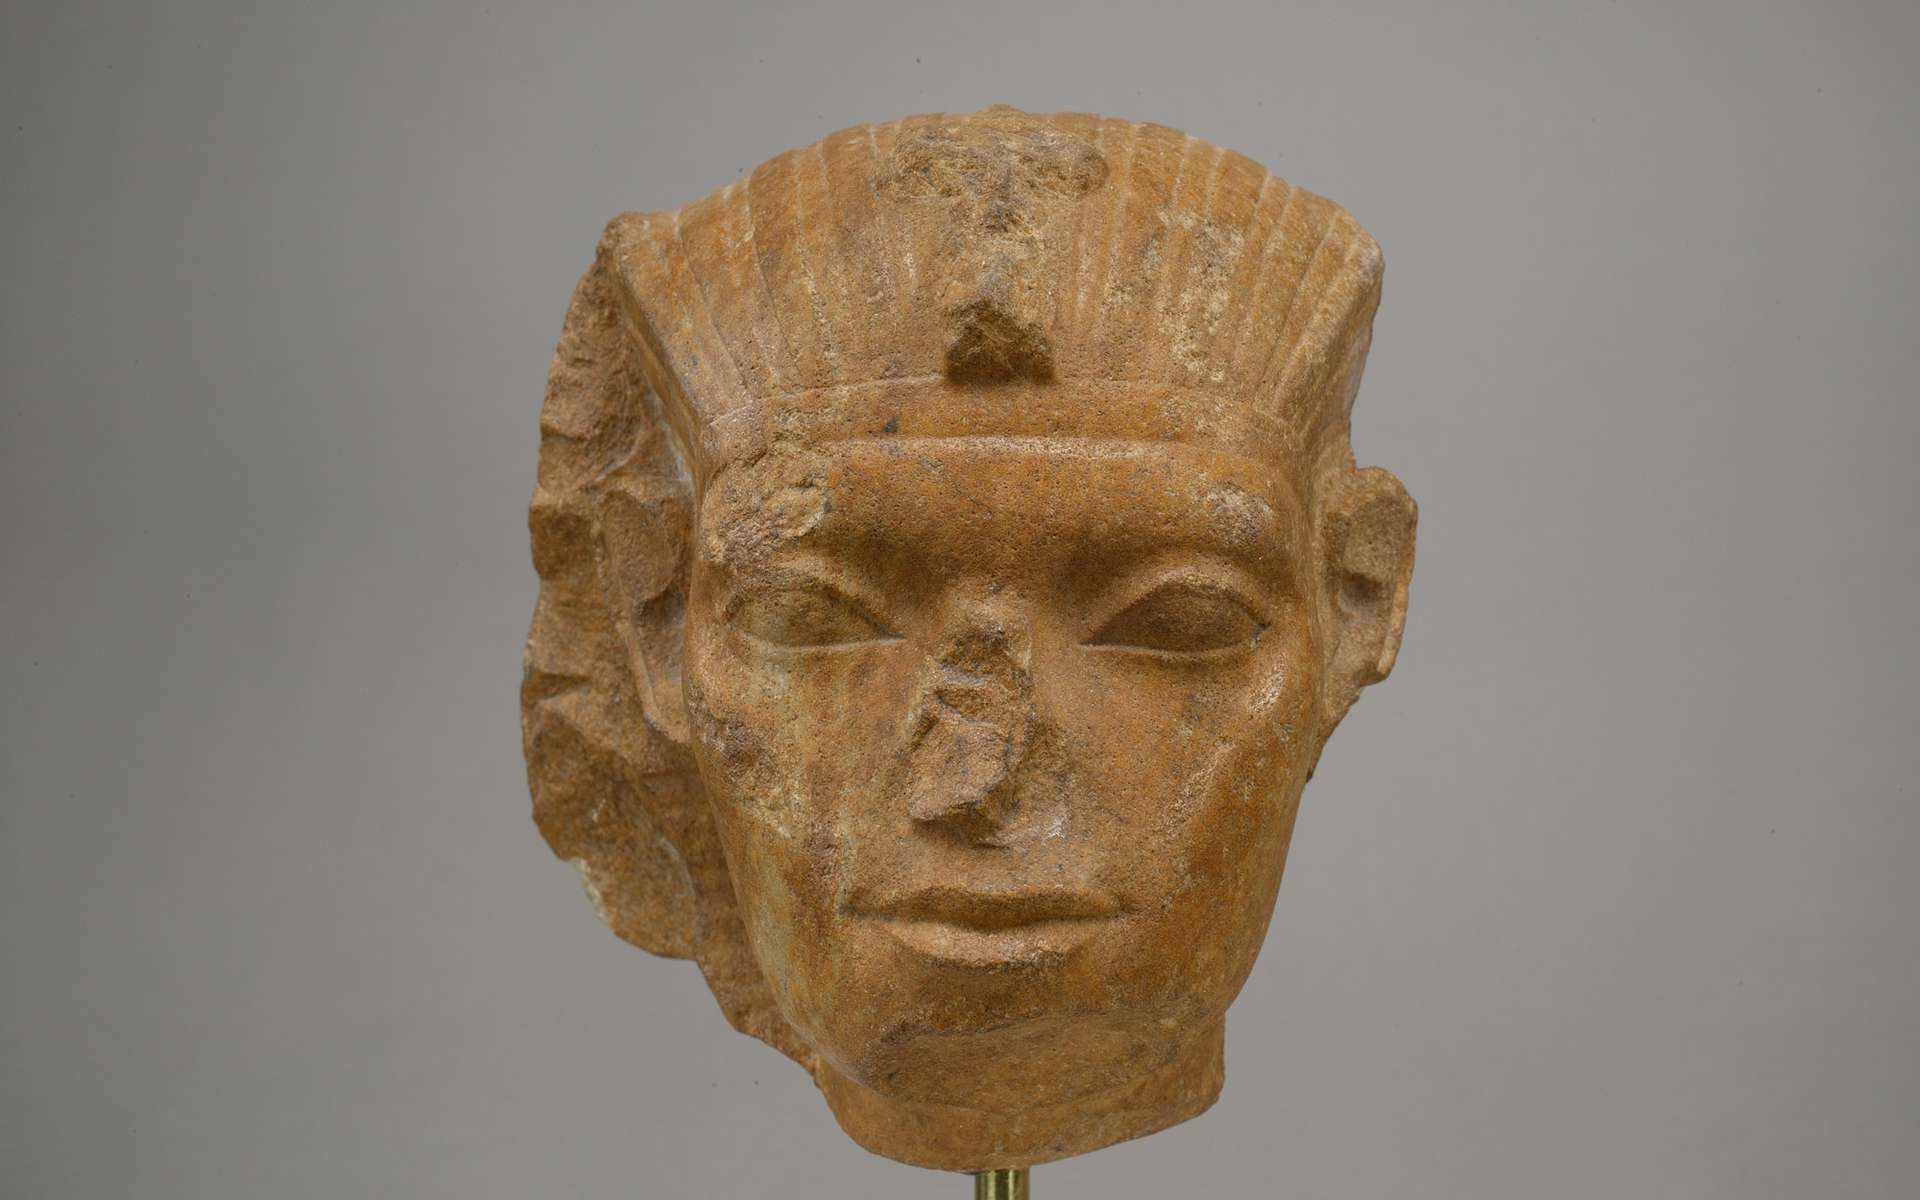 Ancient Egypt: why do statues always have a broken nose?